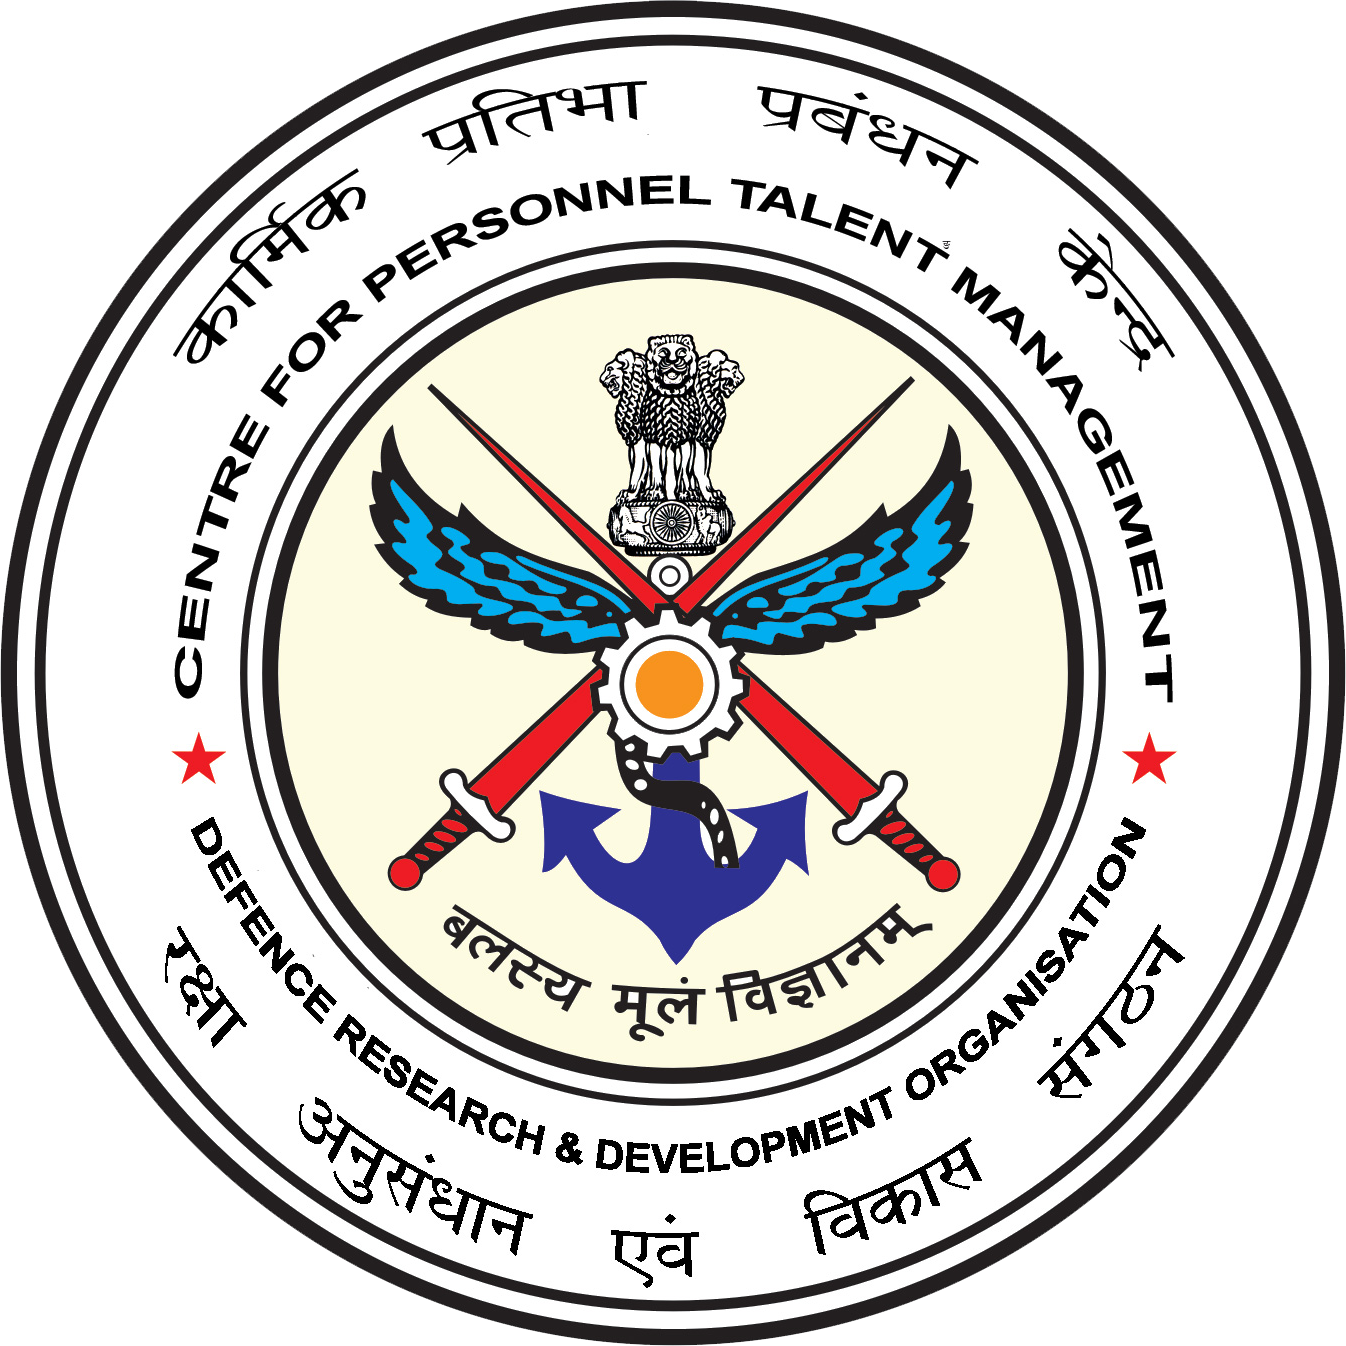 DRDO (Defence Research and Development Organisation)